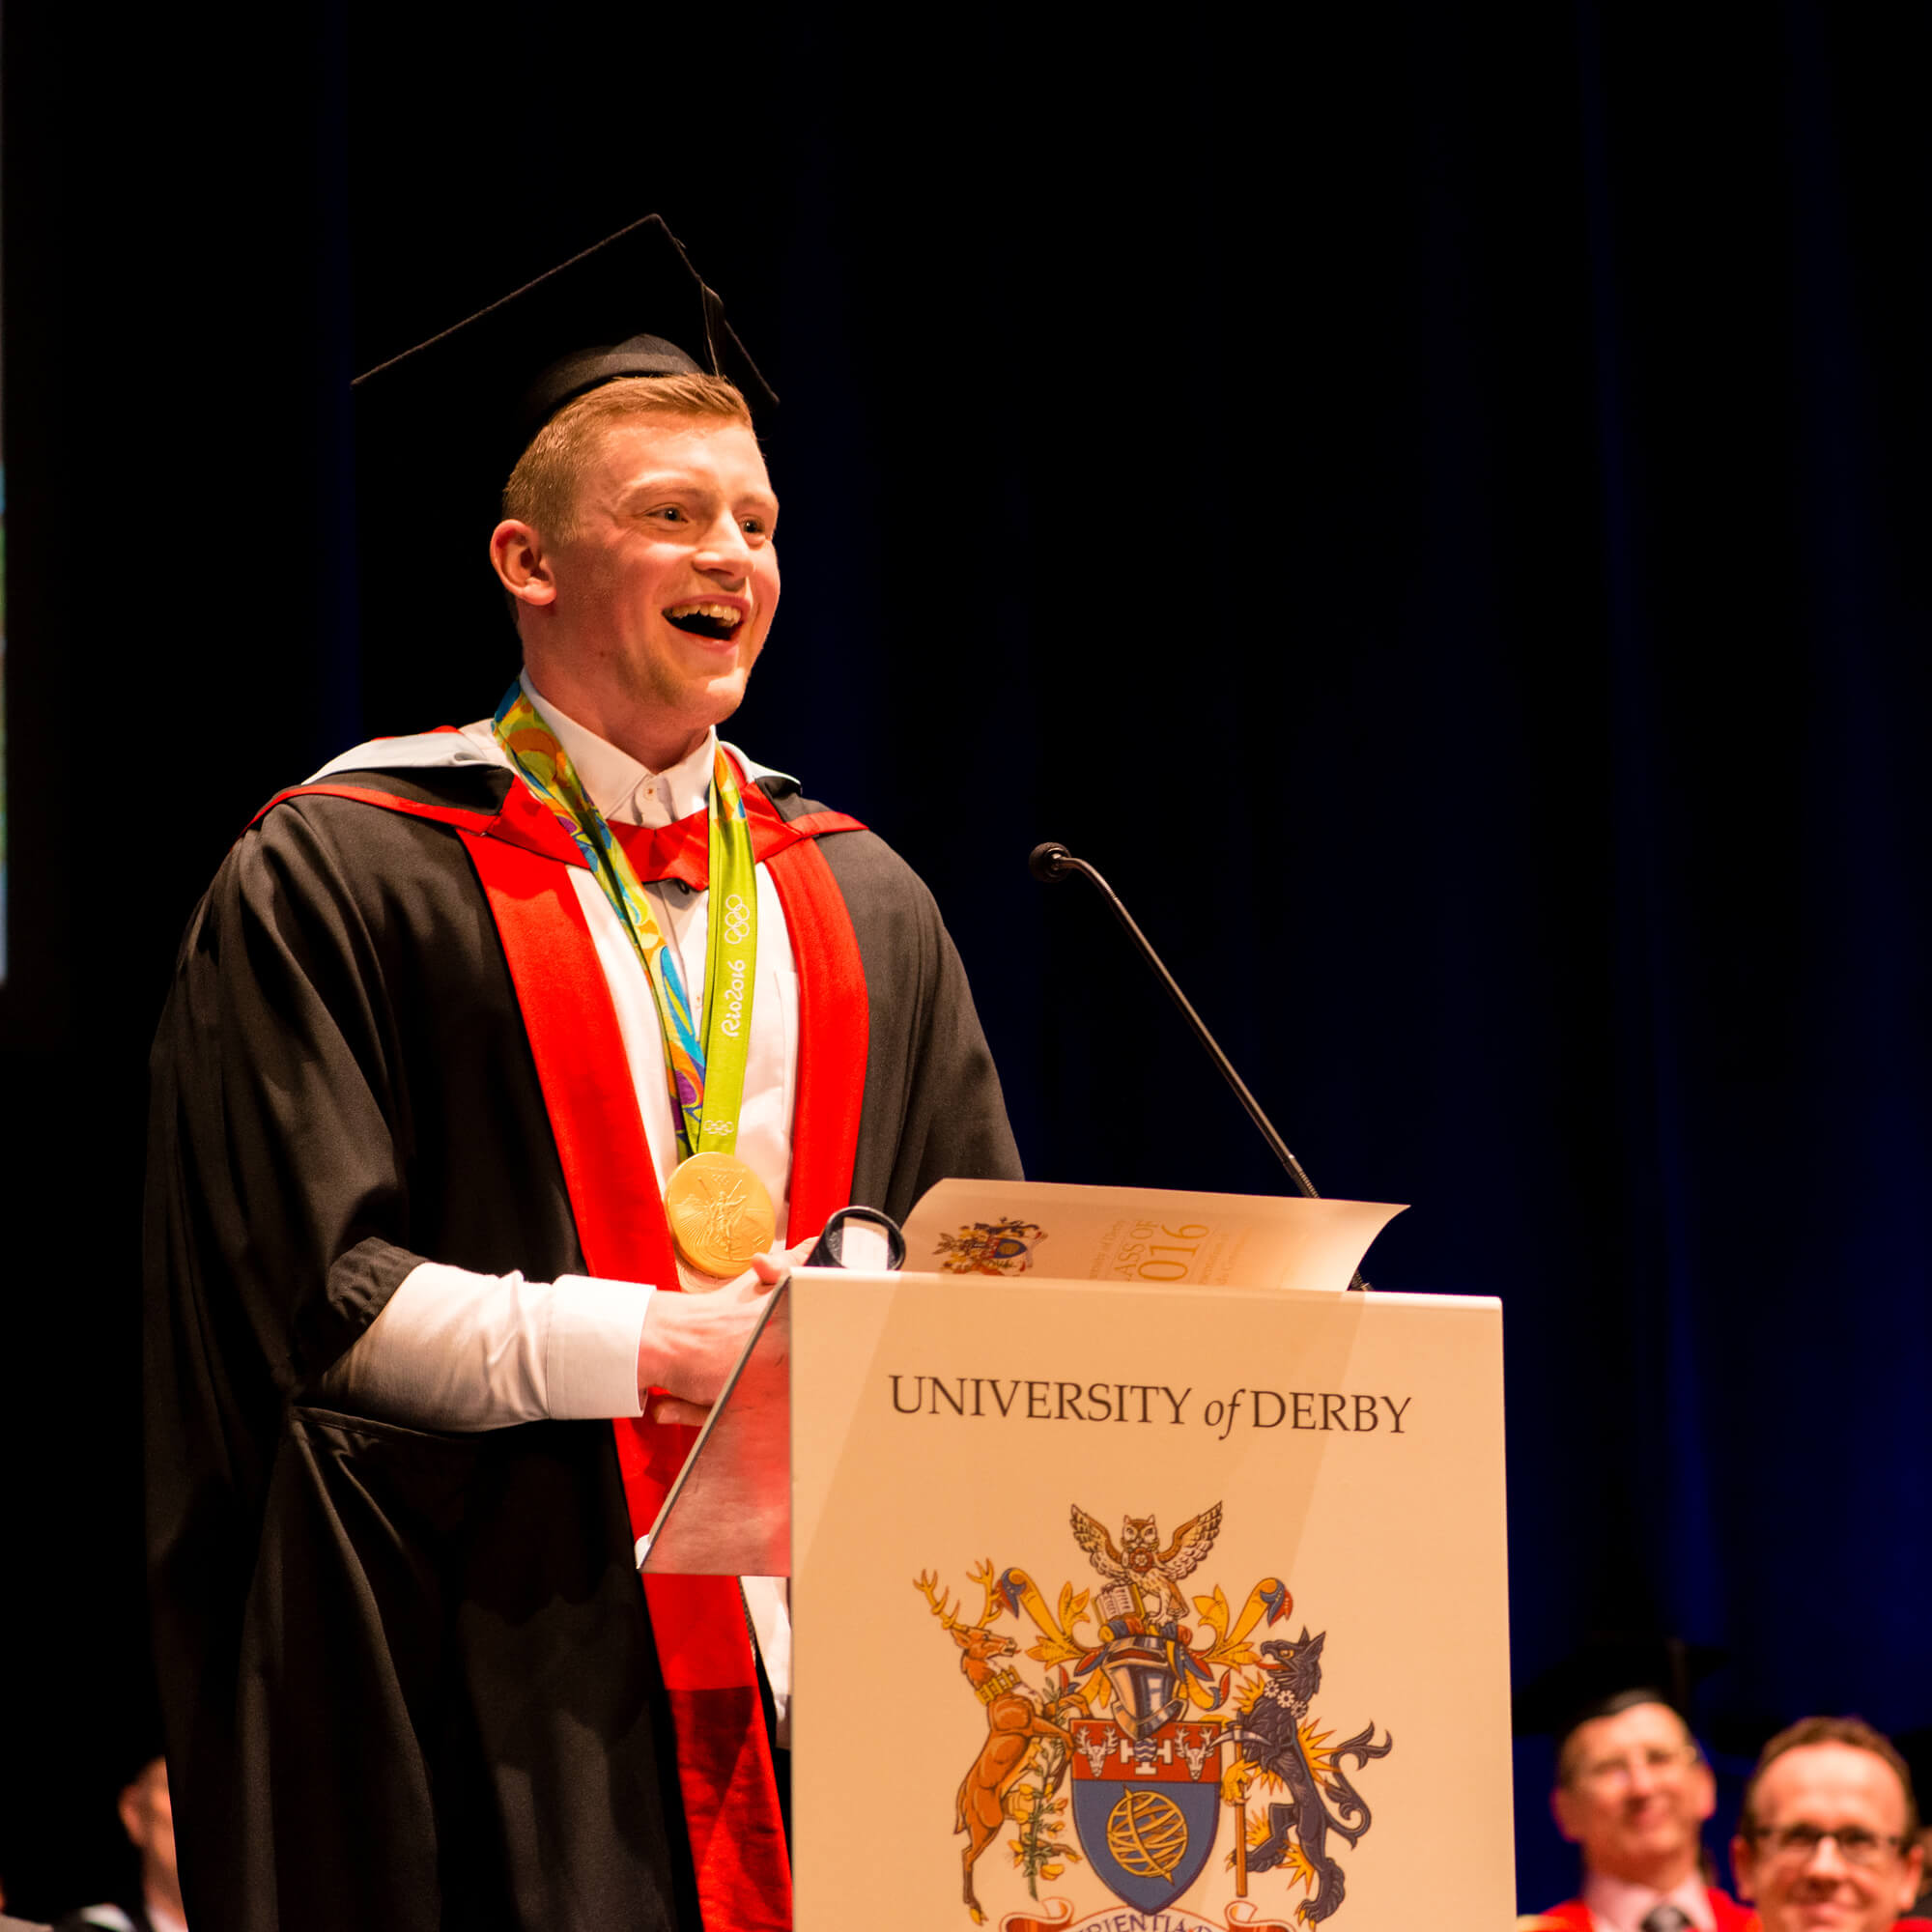 Adam Peaty speaking on podium at University of Derby Awards ceremony